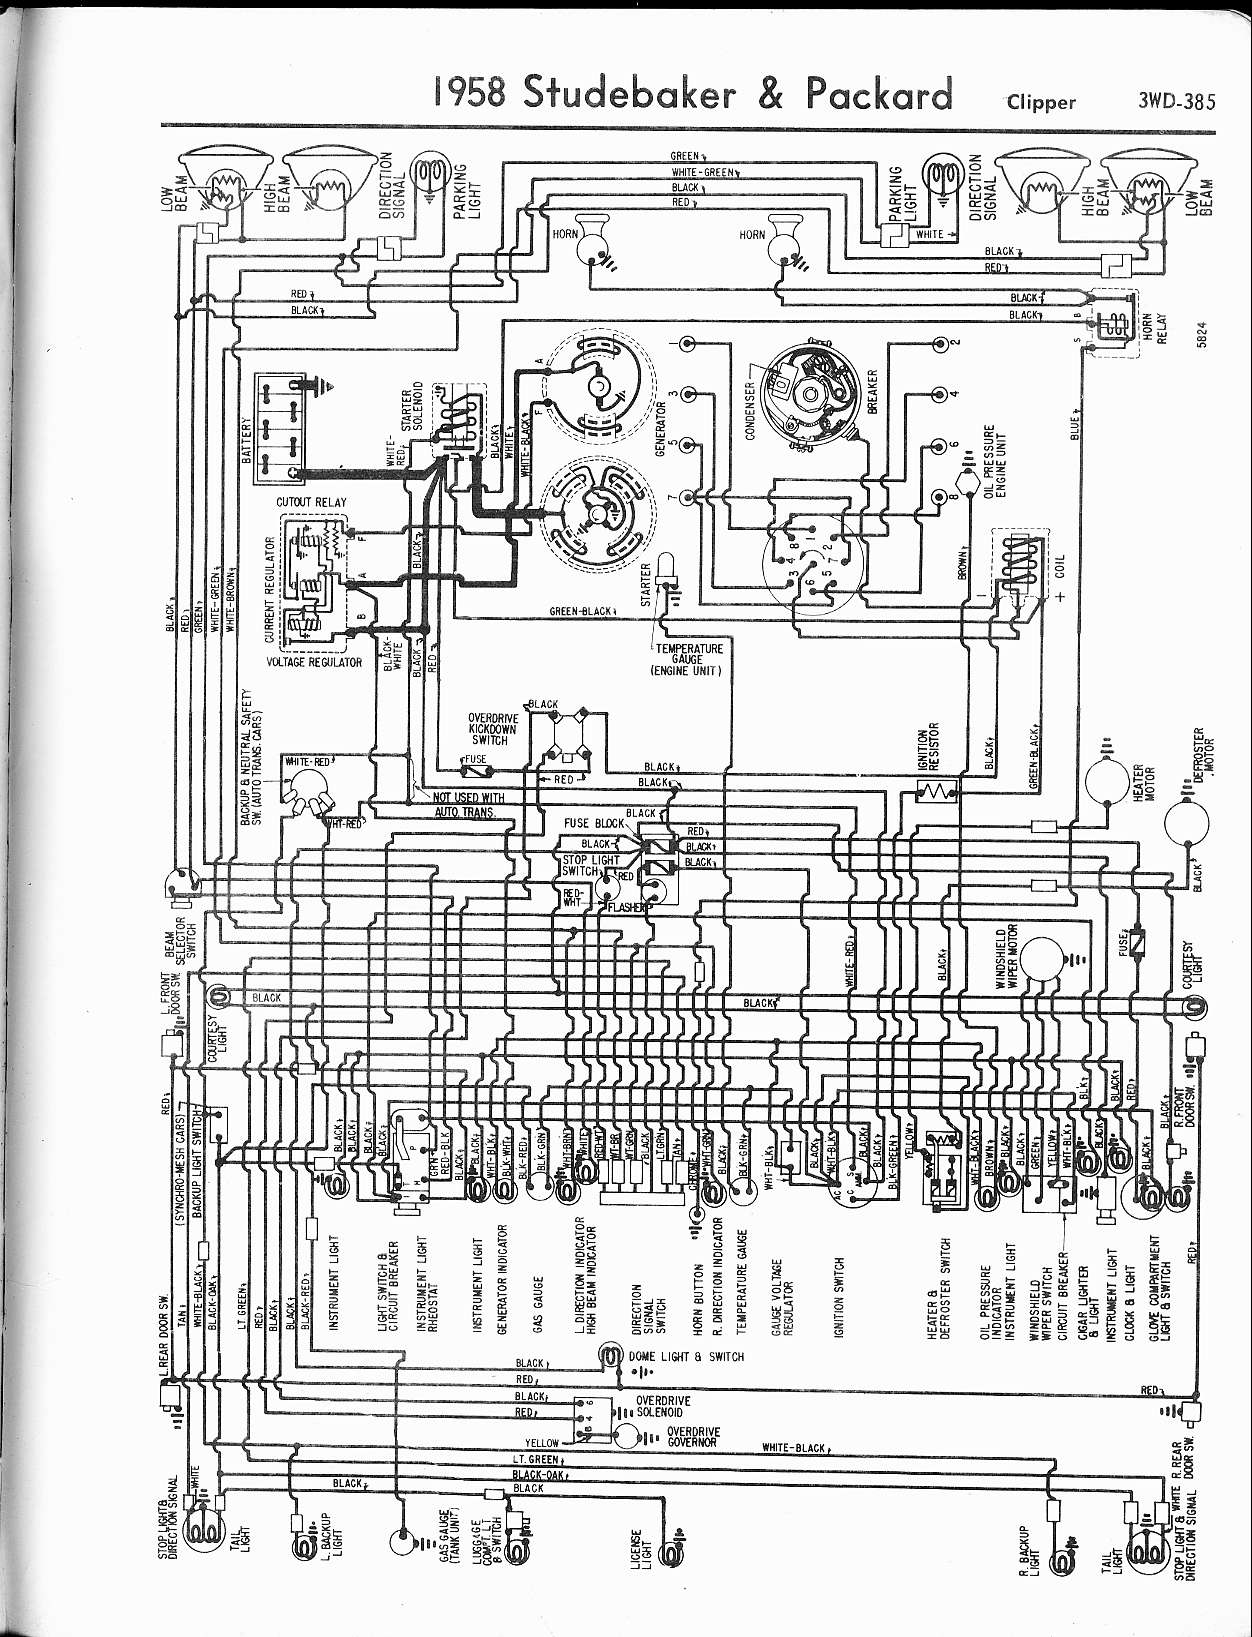 MWire5765 385 studebaker wiring diagrams the old car manual project studebaker wiring diagrams at n-0.co